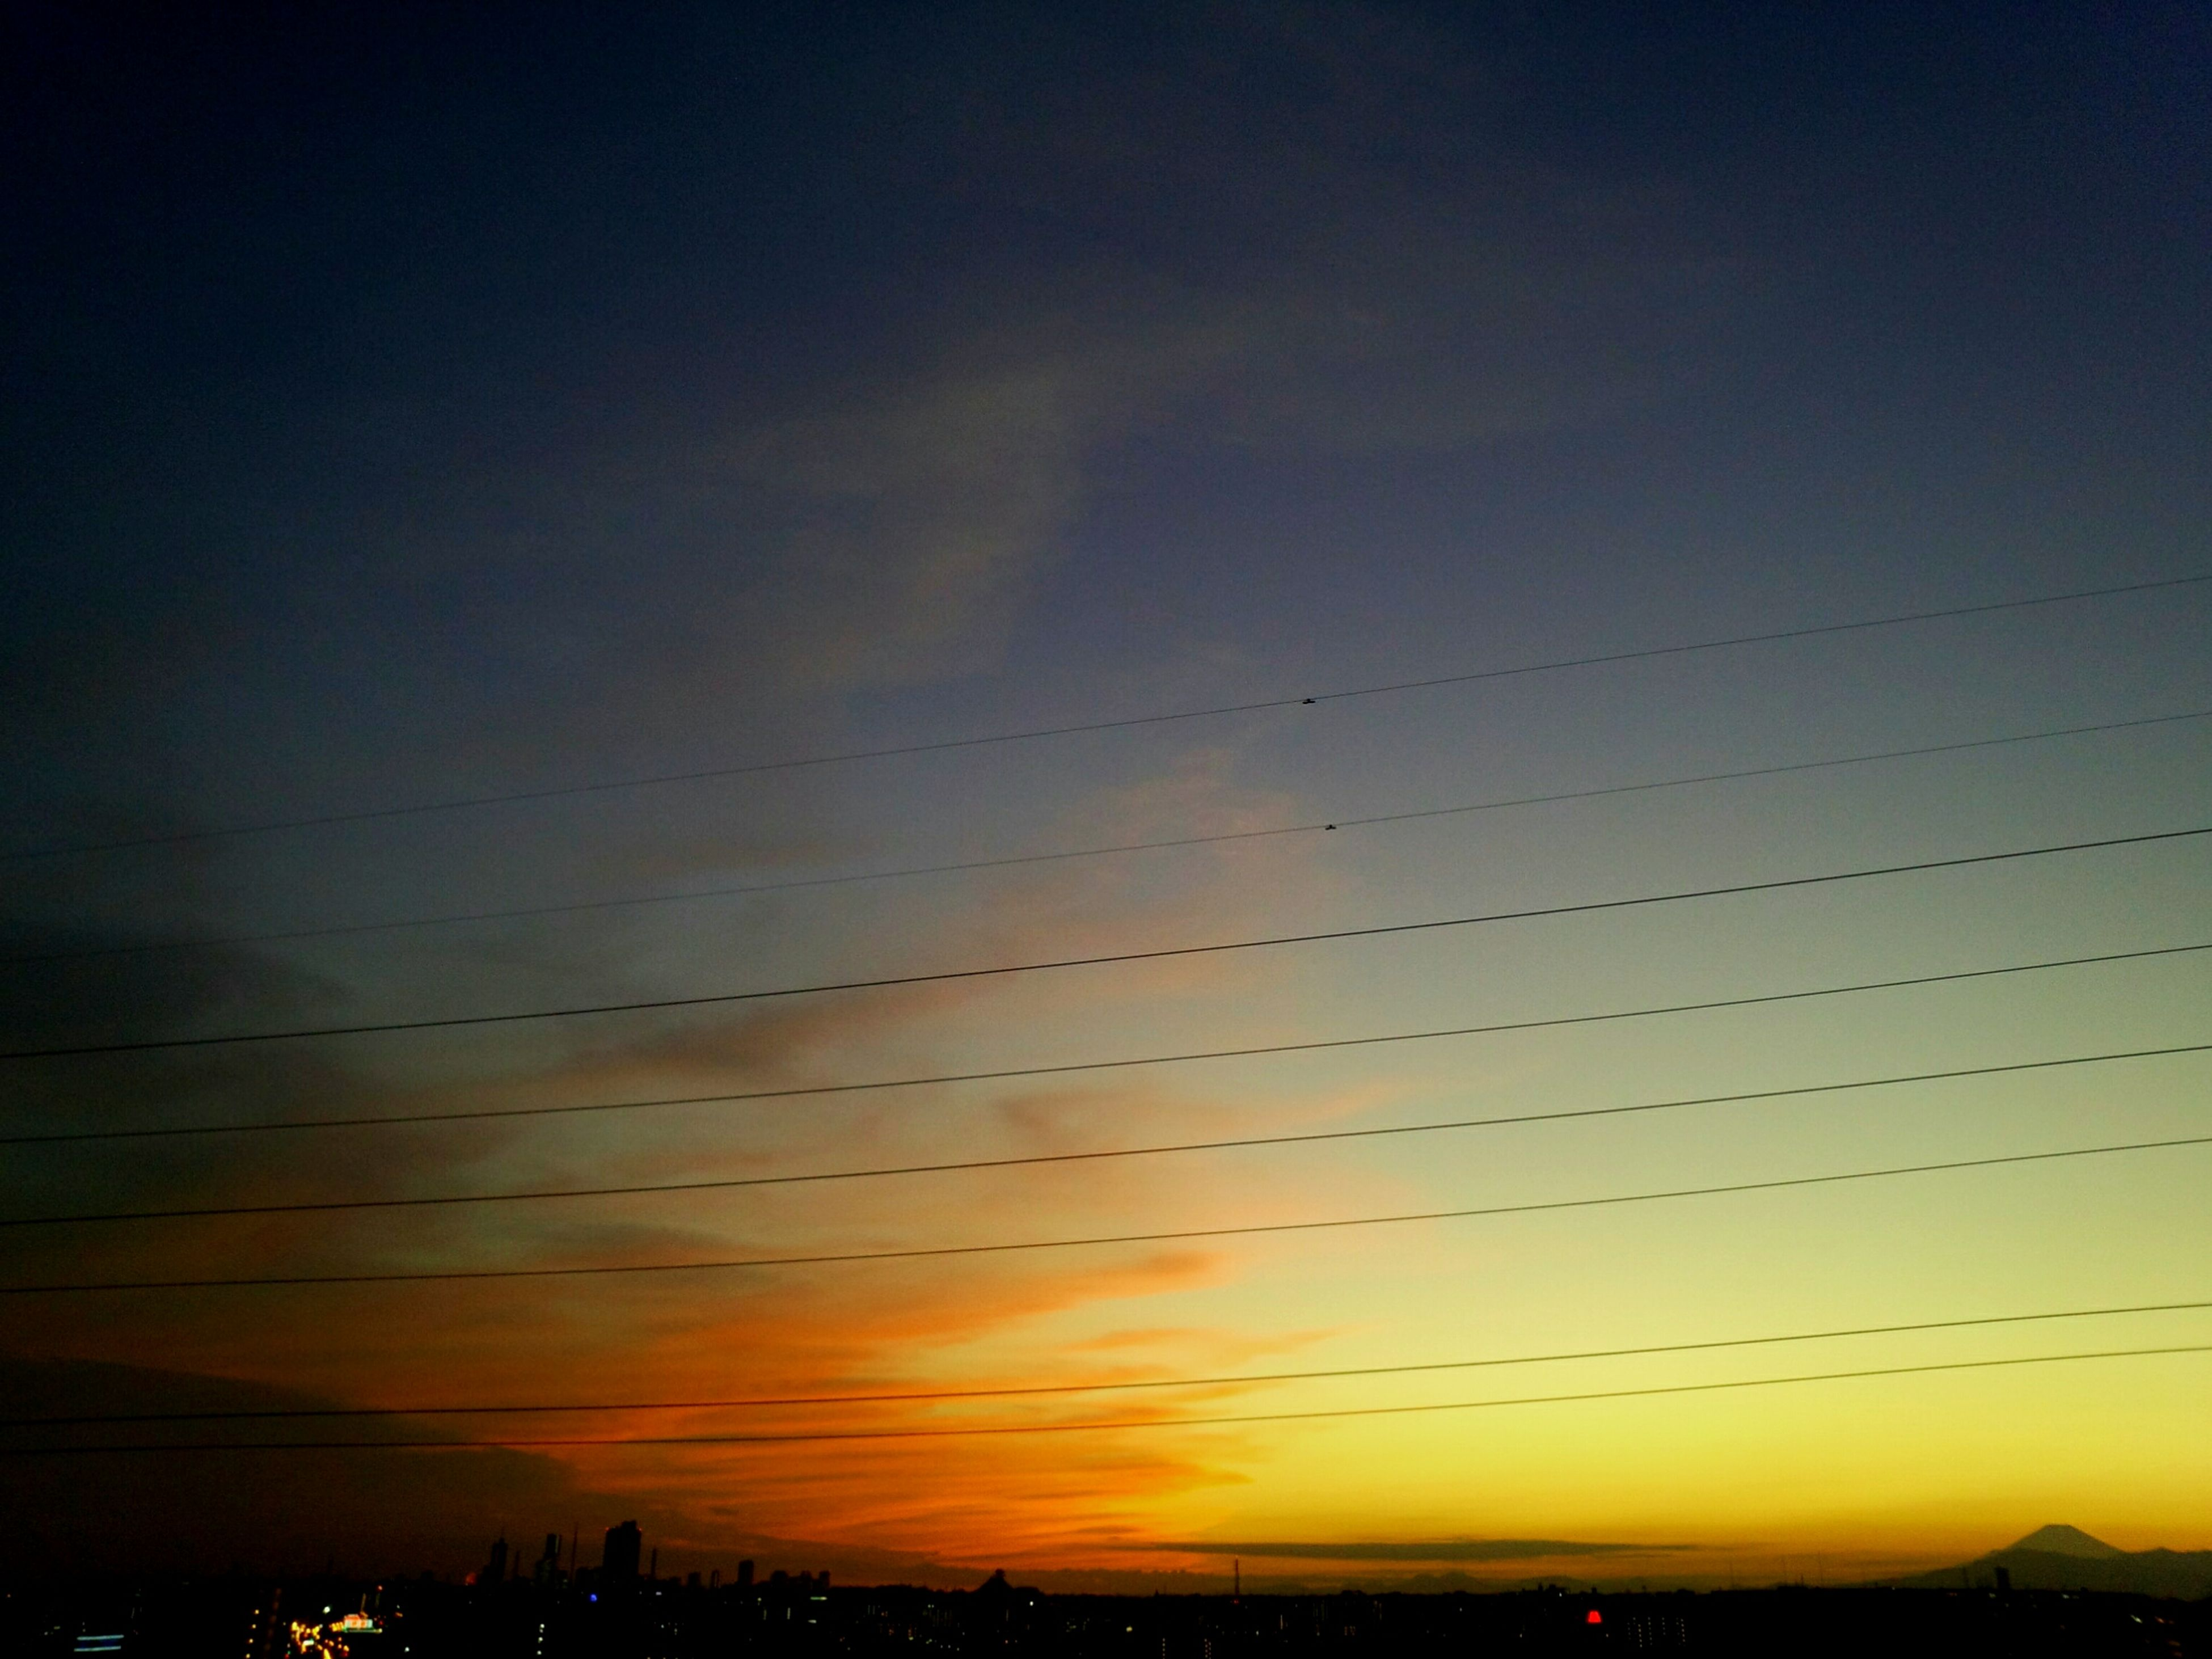 sunset, silhouette, scenics, sky, tranquil scene, tranquility, beauty in nature, nature, dusk, orange color, idyllic, copy space, power line, landscape, outdoors, outline, bird, low angle view, no people, cloud - sky